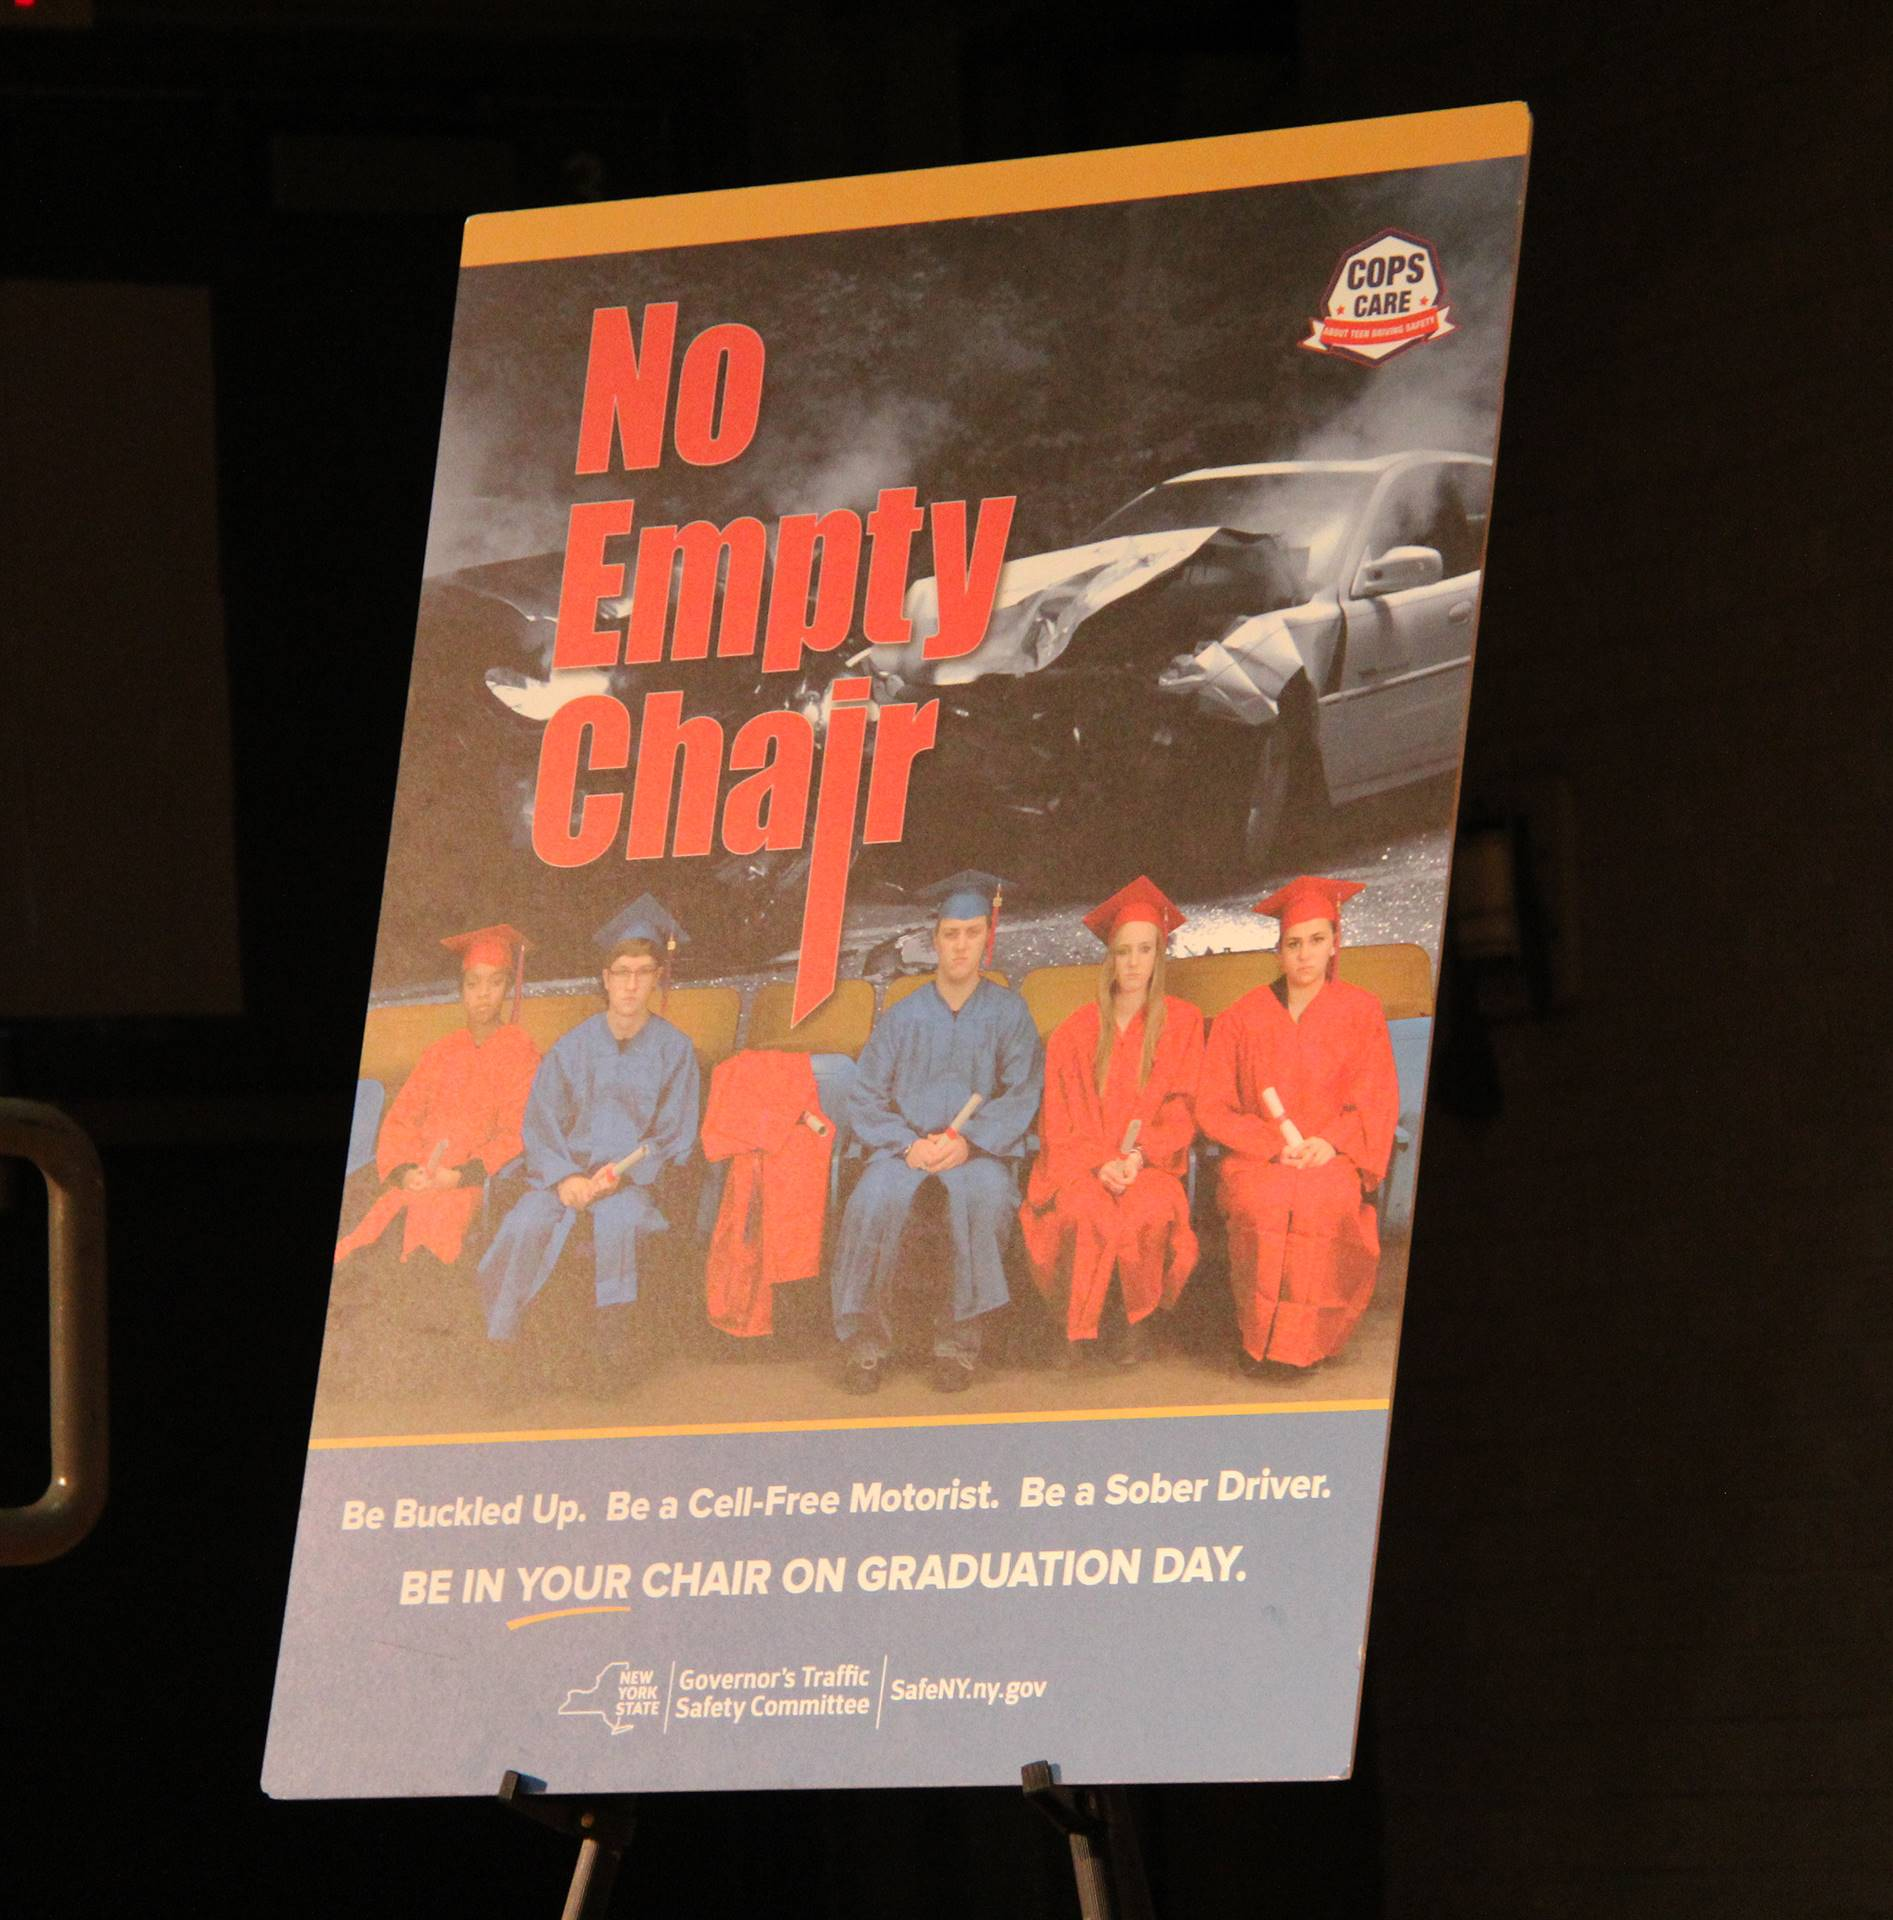 no empty chair poster